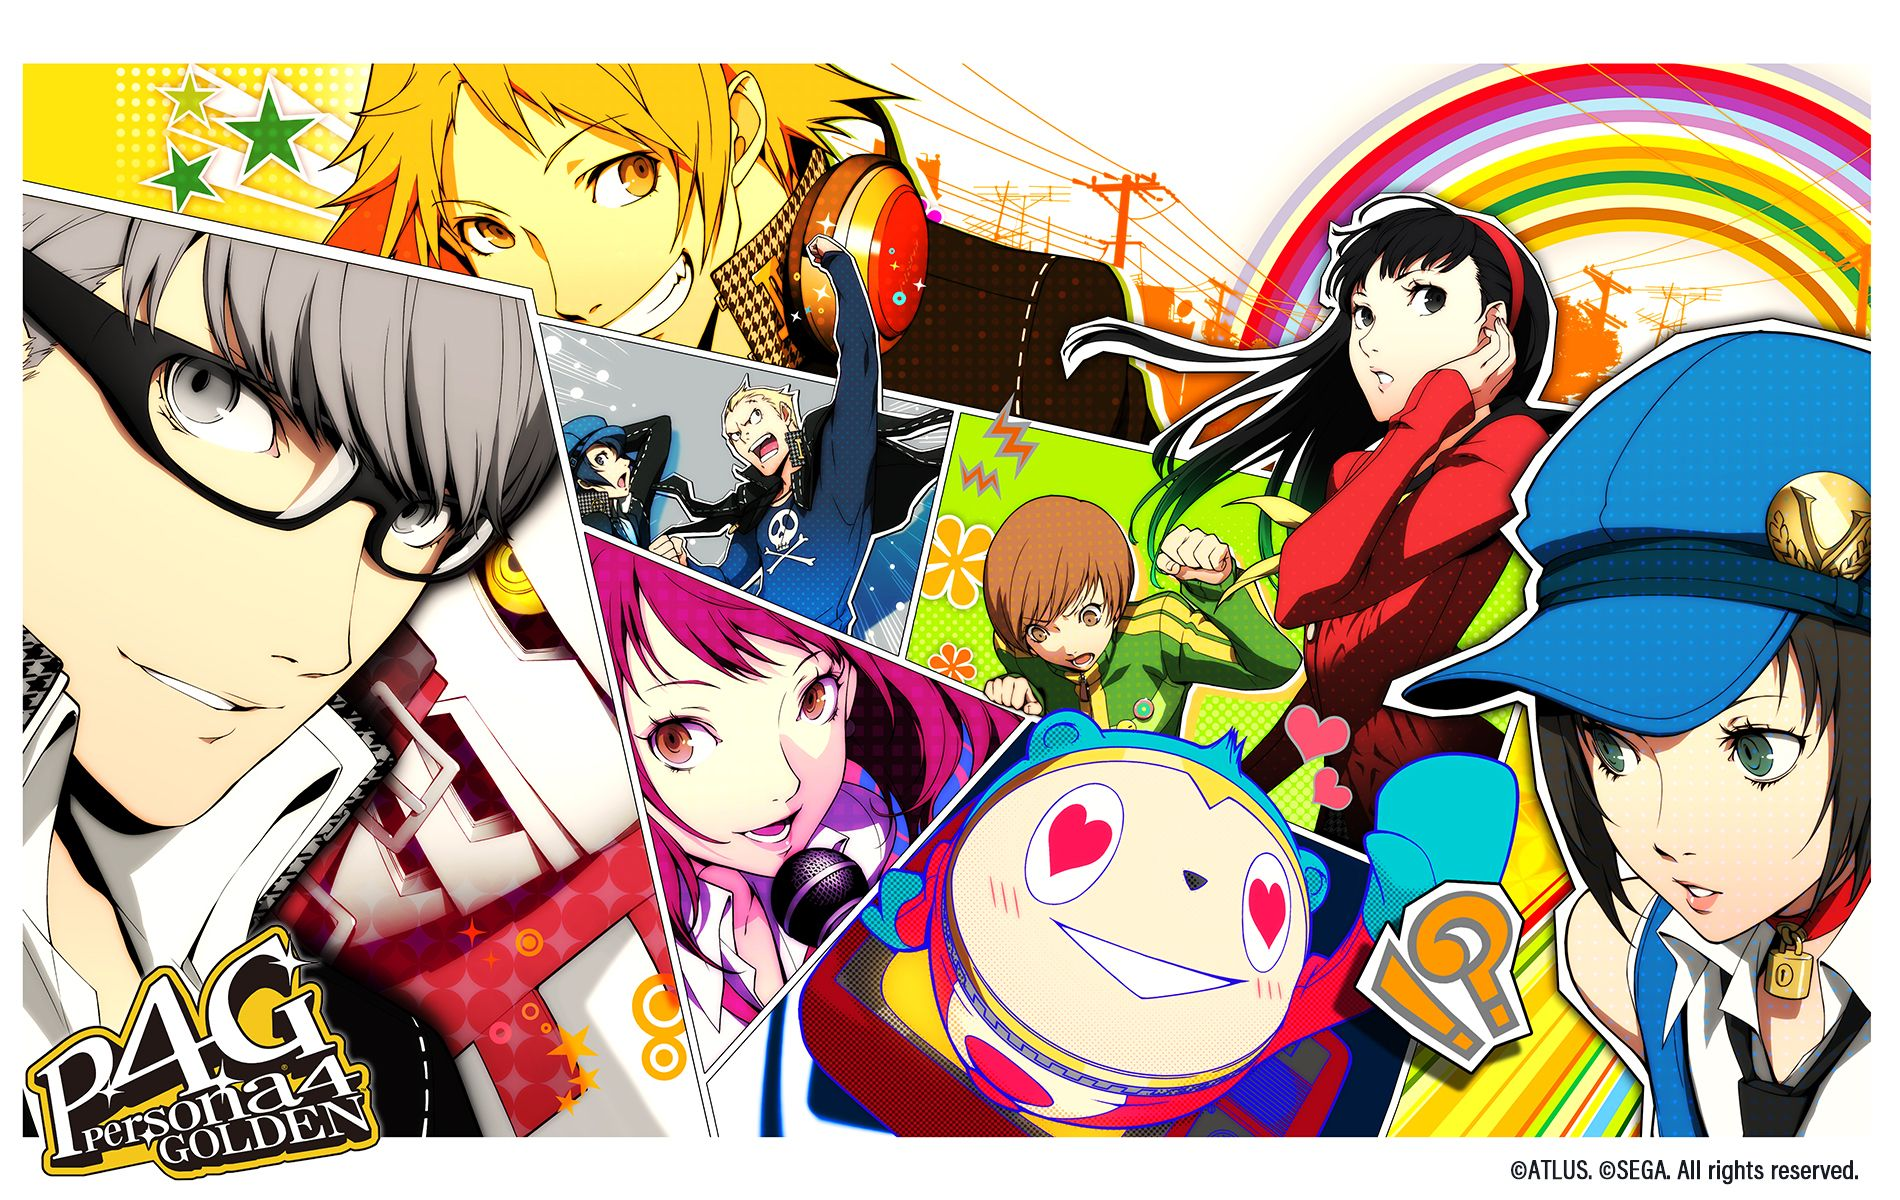 Pin By Michael On Games Persona 4 Wallpaper Persona 4 Persona